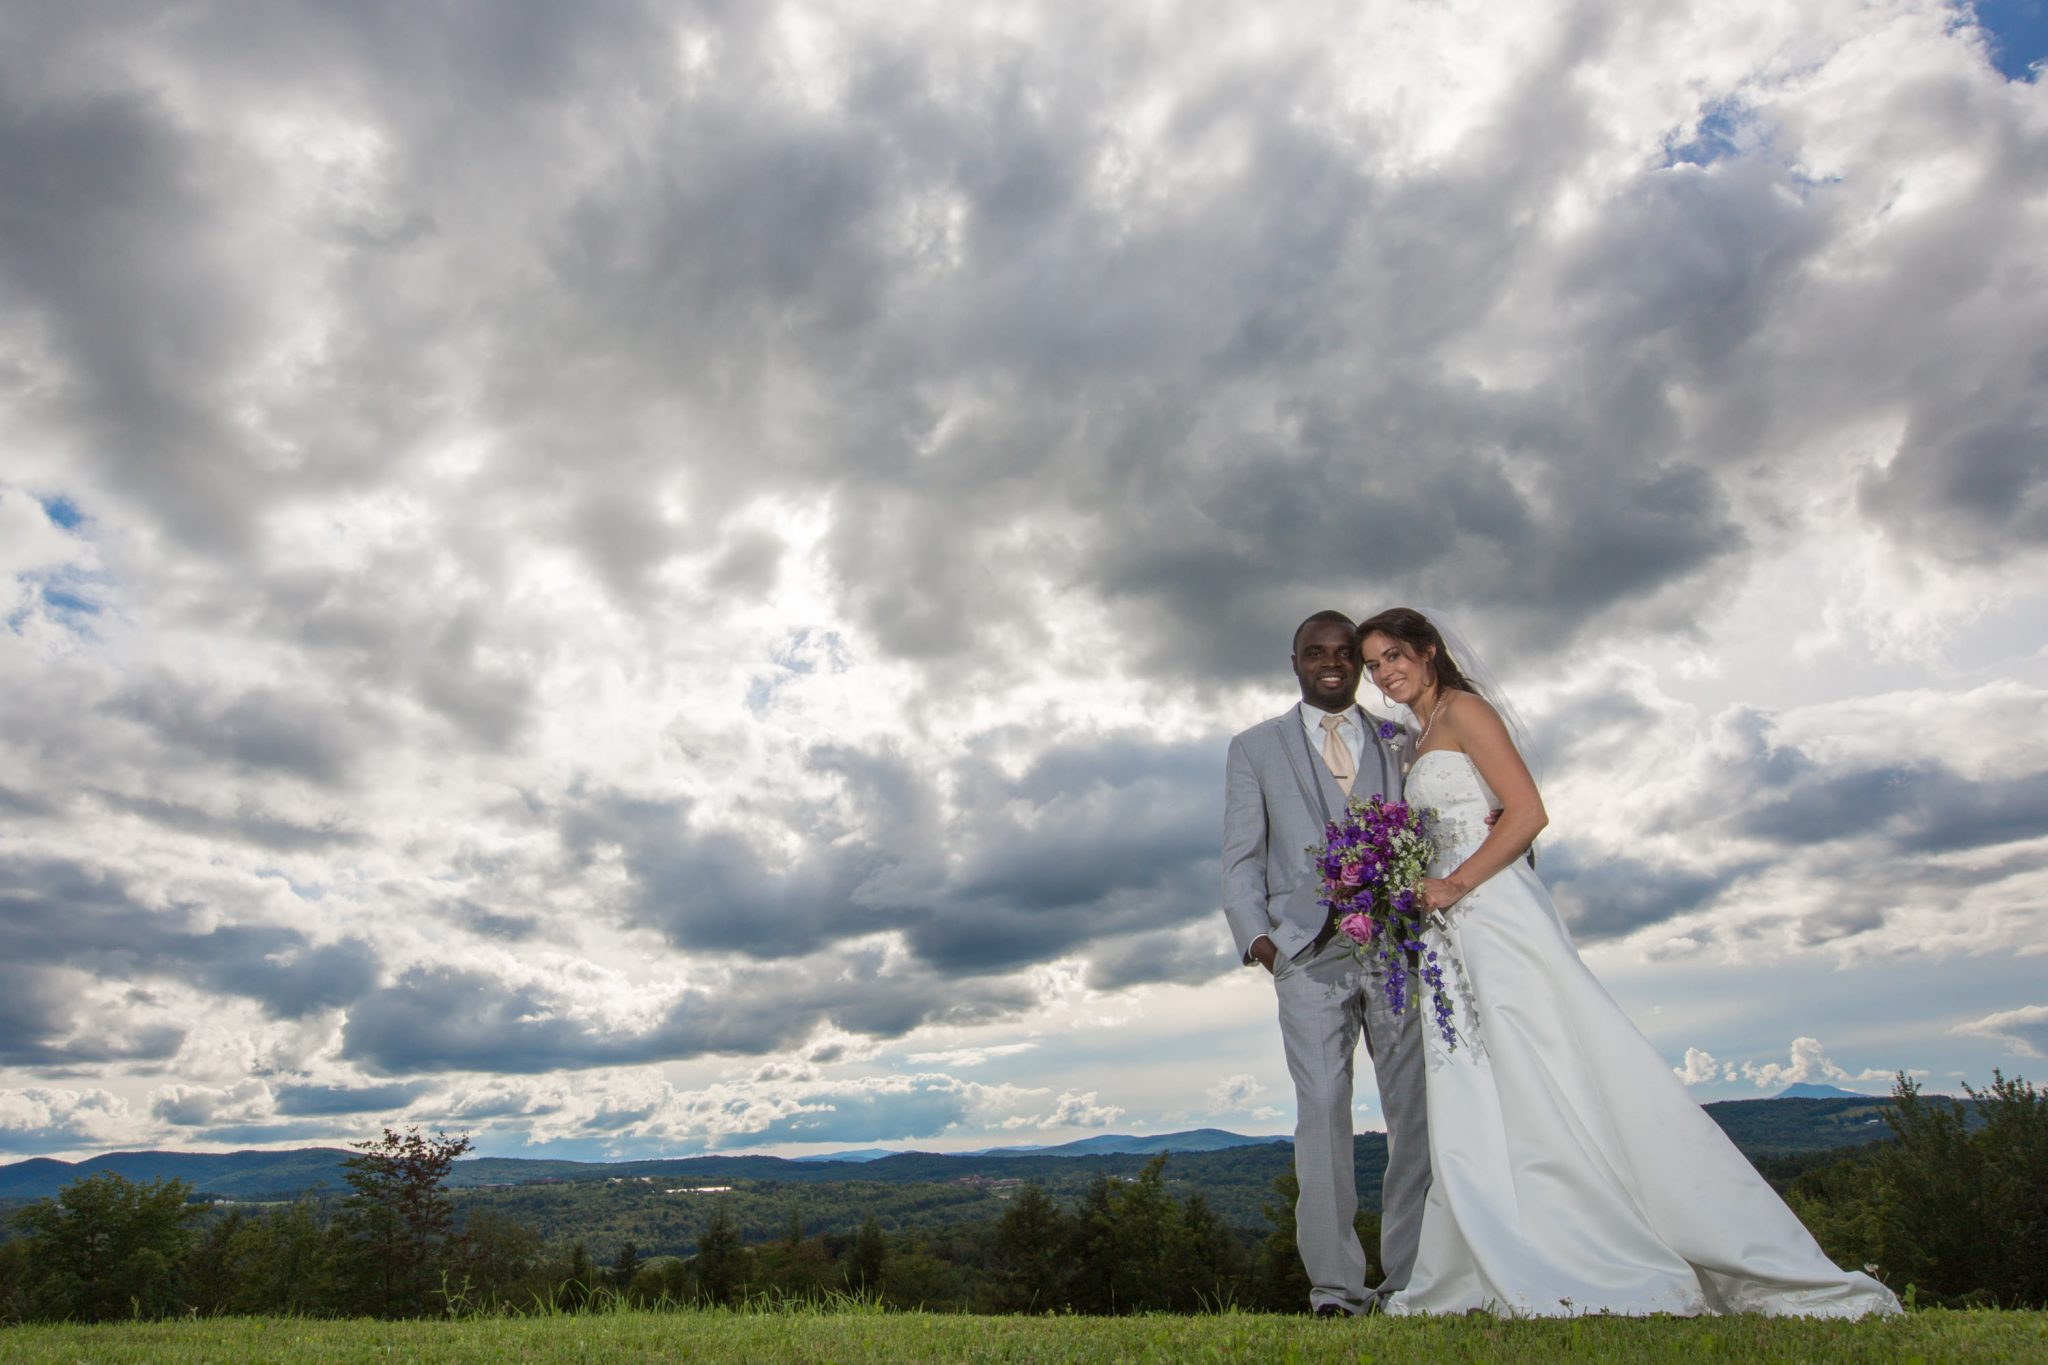 Epic clouds and wedding portrait with black couple in Barre, Vermont